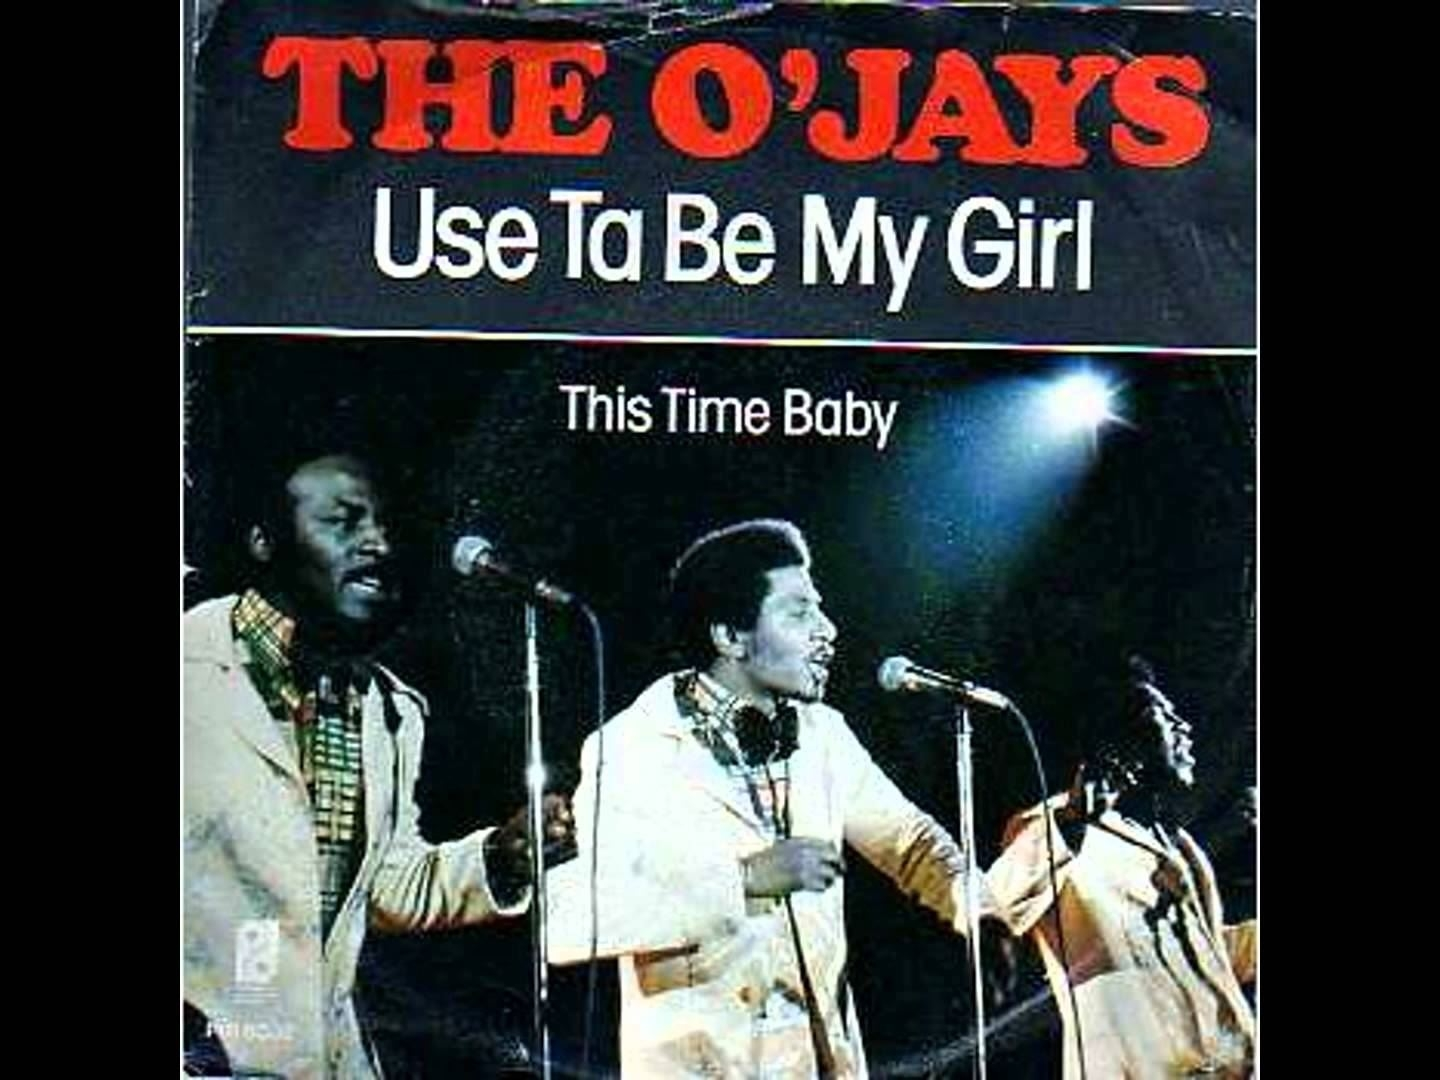 ojays-used-to-be-my-girl